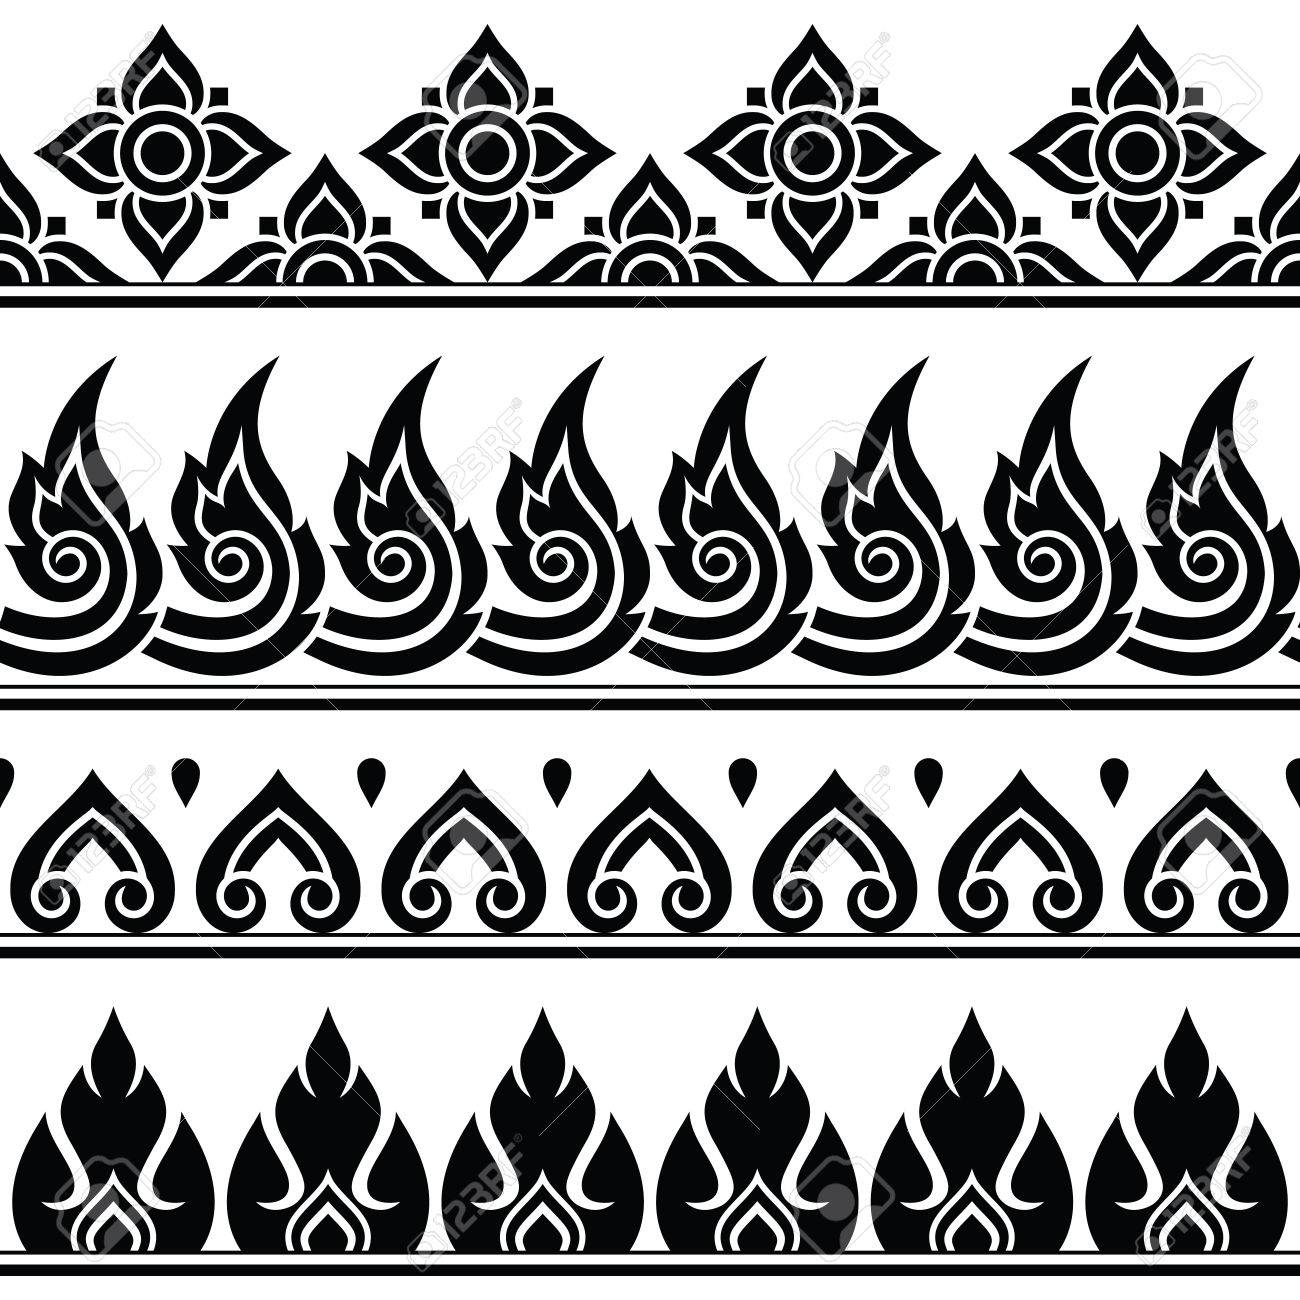 Seamless Thai Pattern Repetitive Design From Thailand Folk